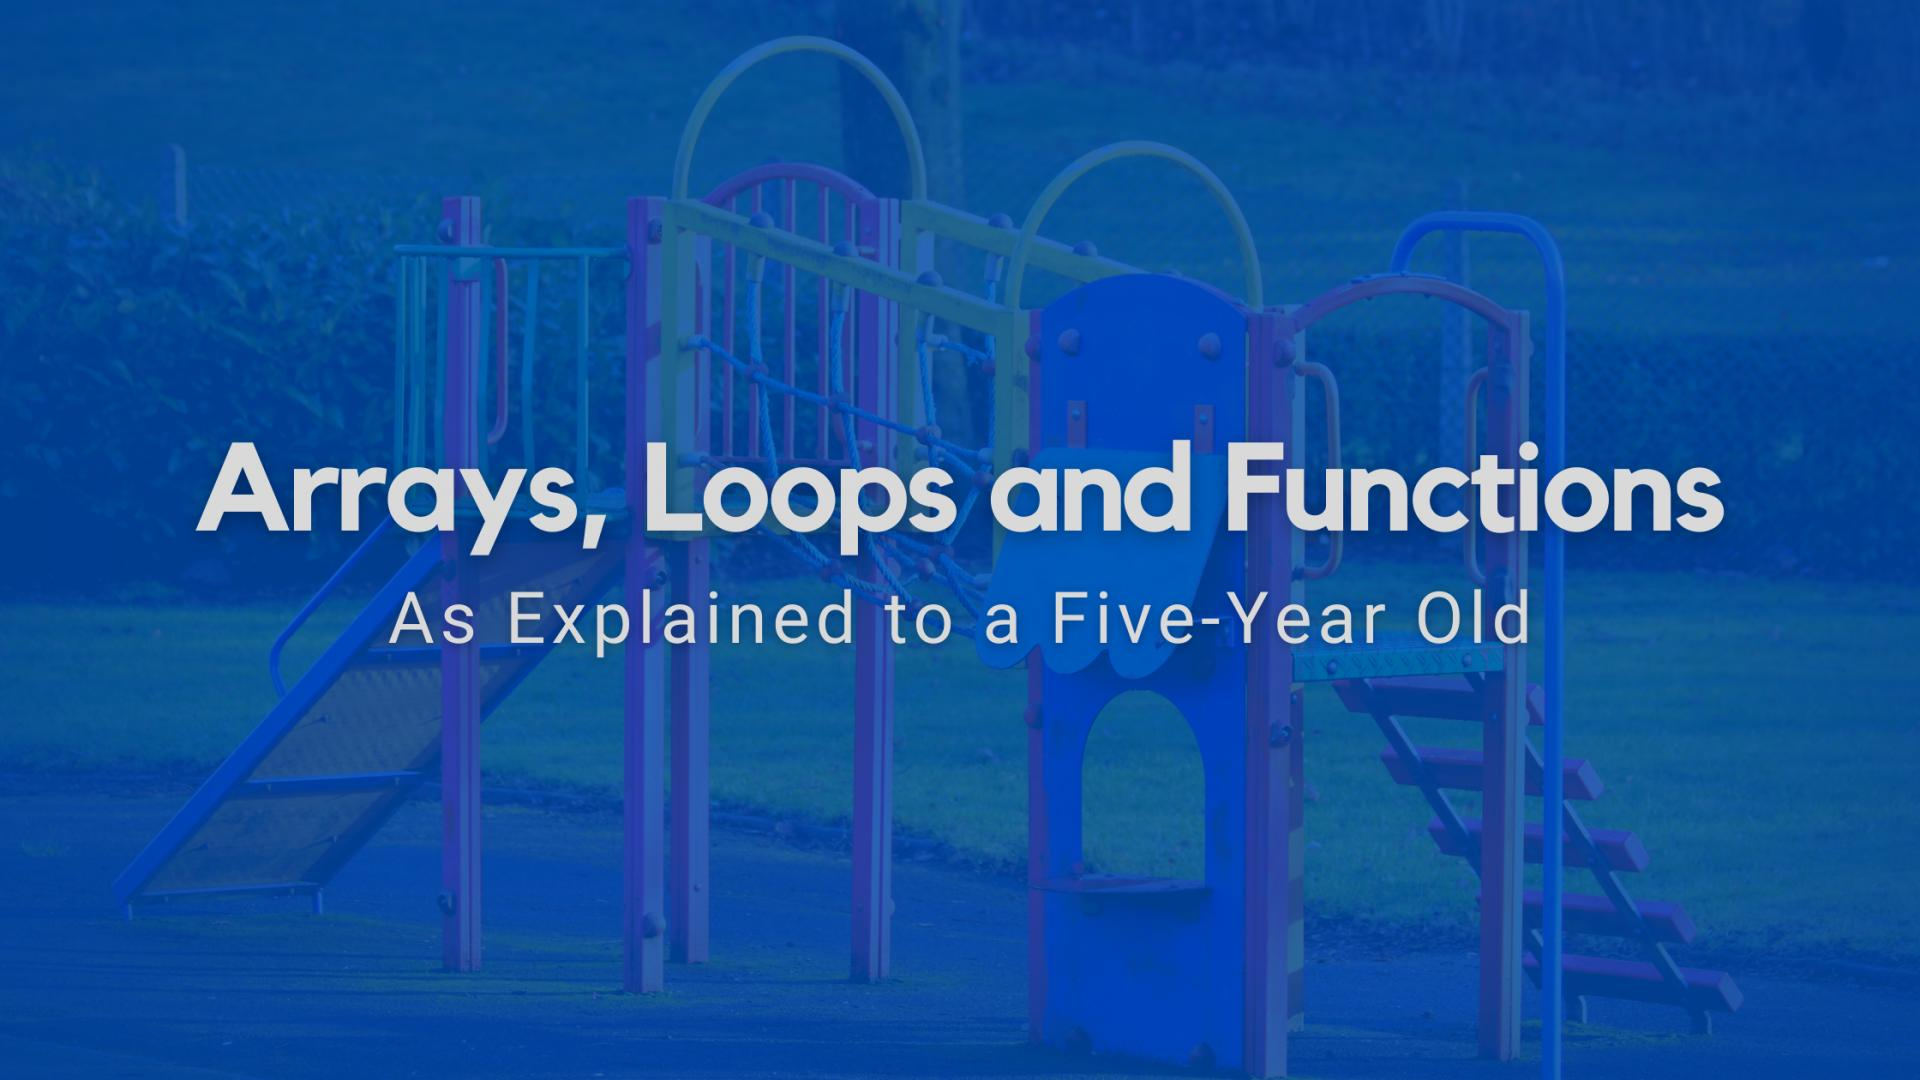 Arrays, Loops and Functions as Explained to a Five-Year Old